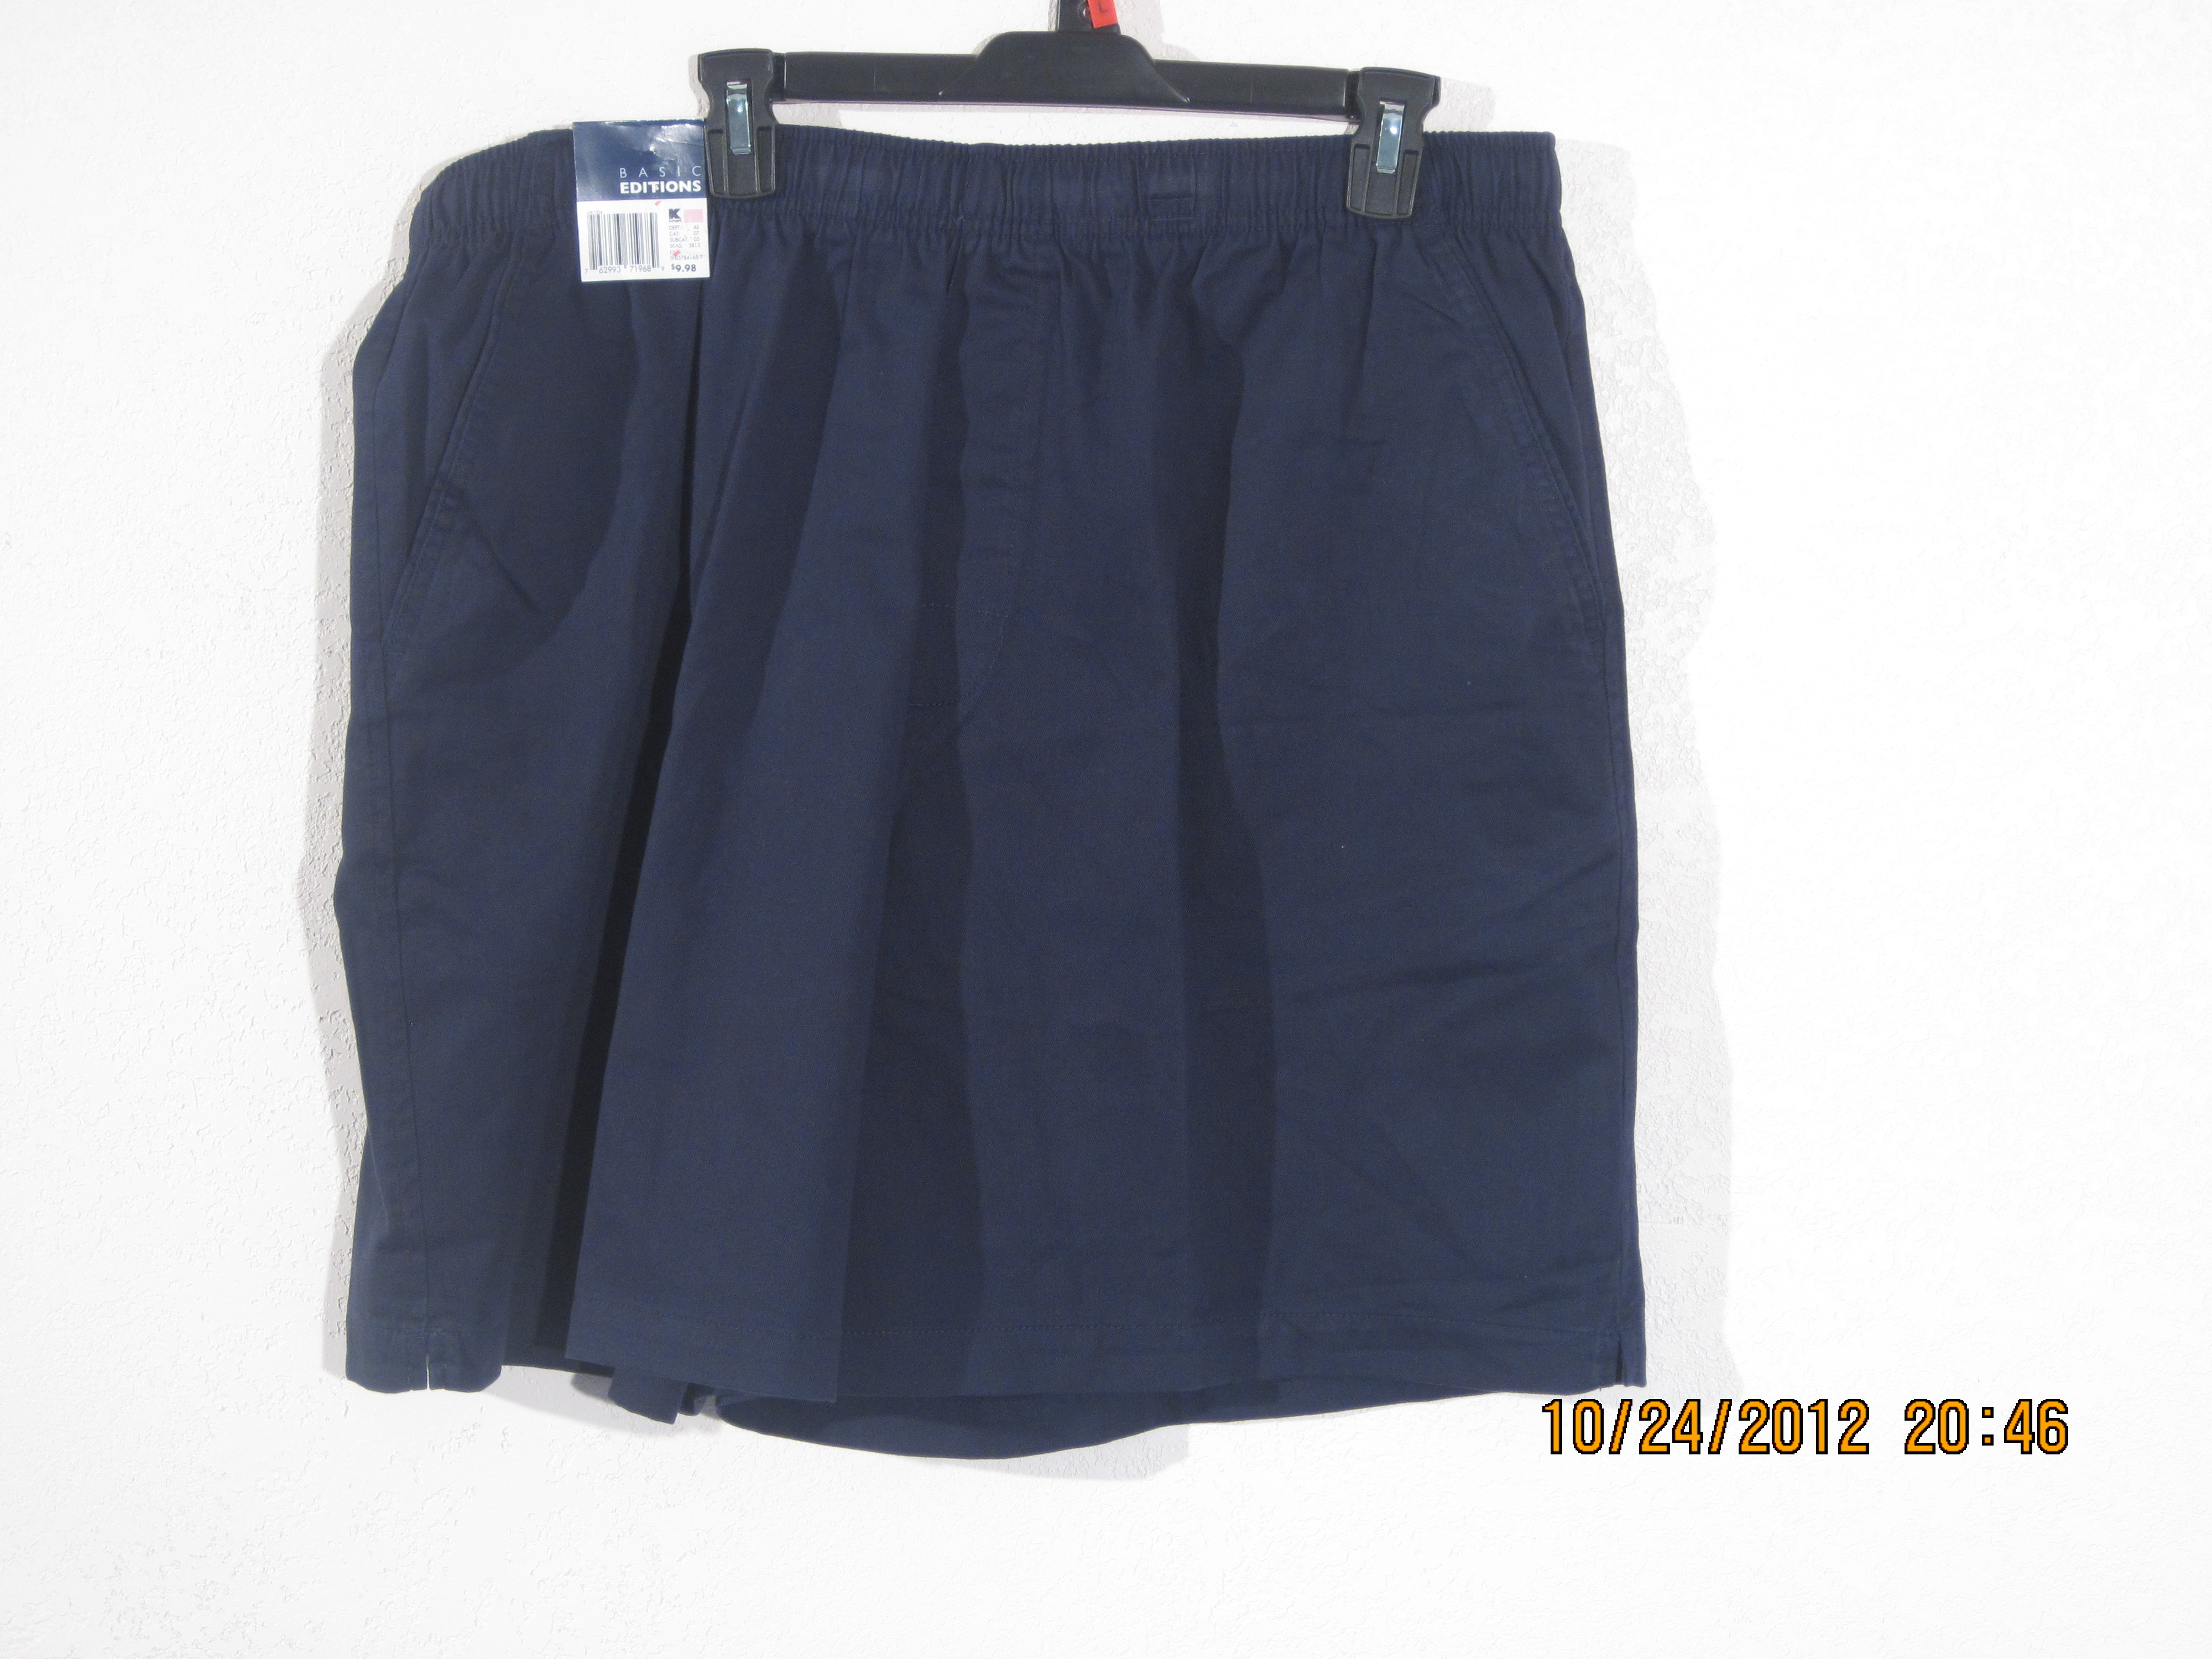 Basic Editions Sz M Casual Shorts (navy blue)